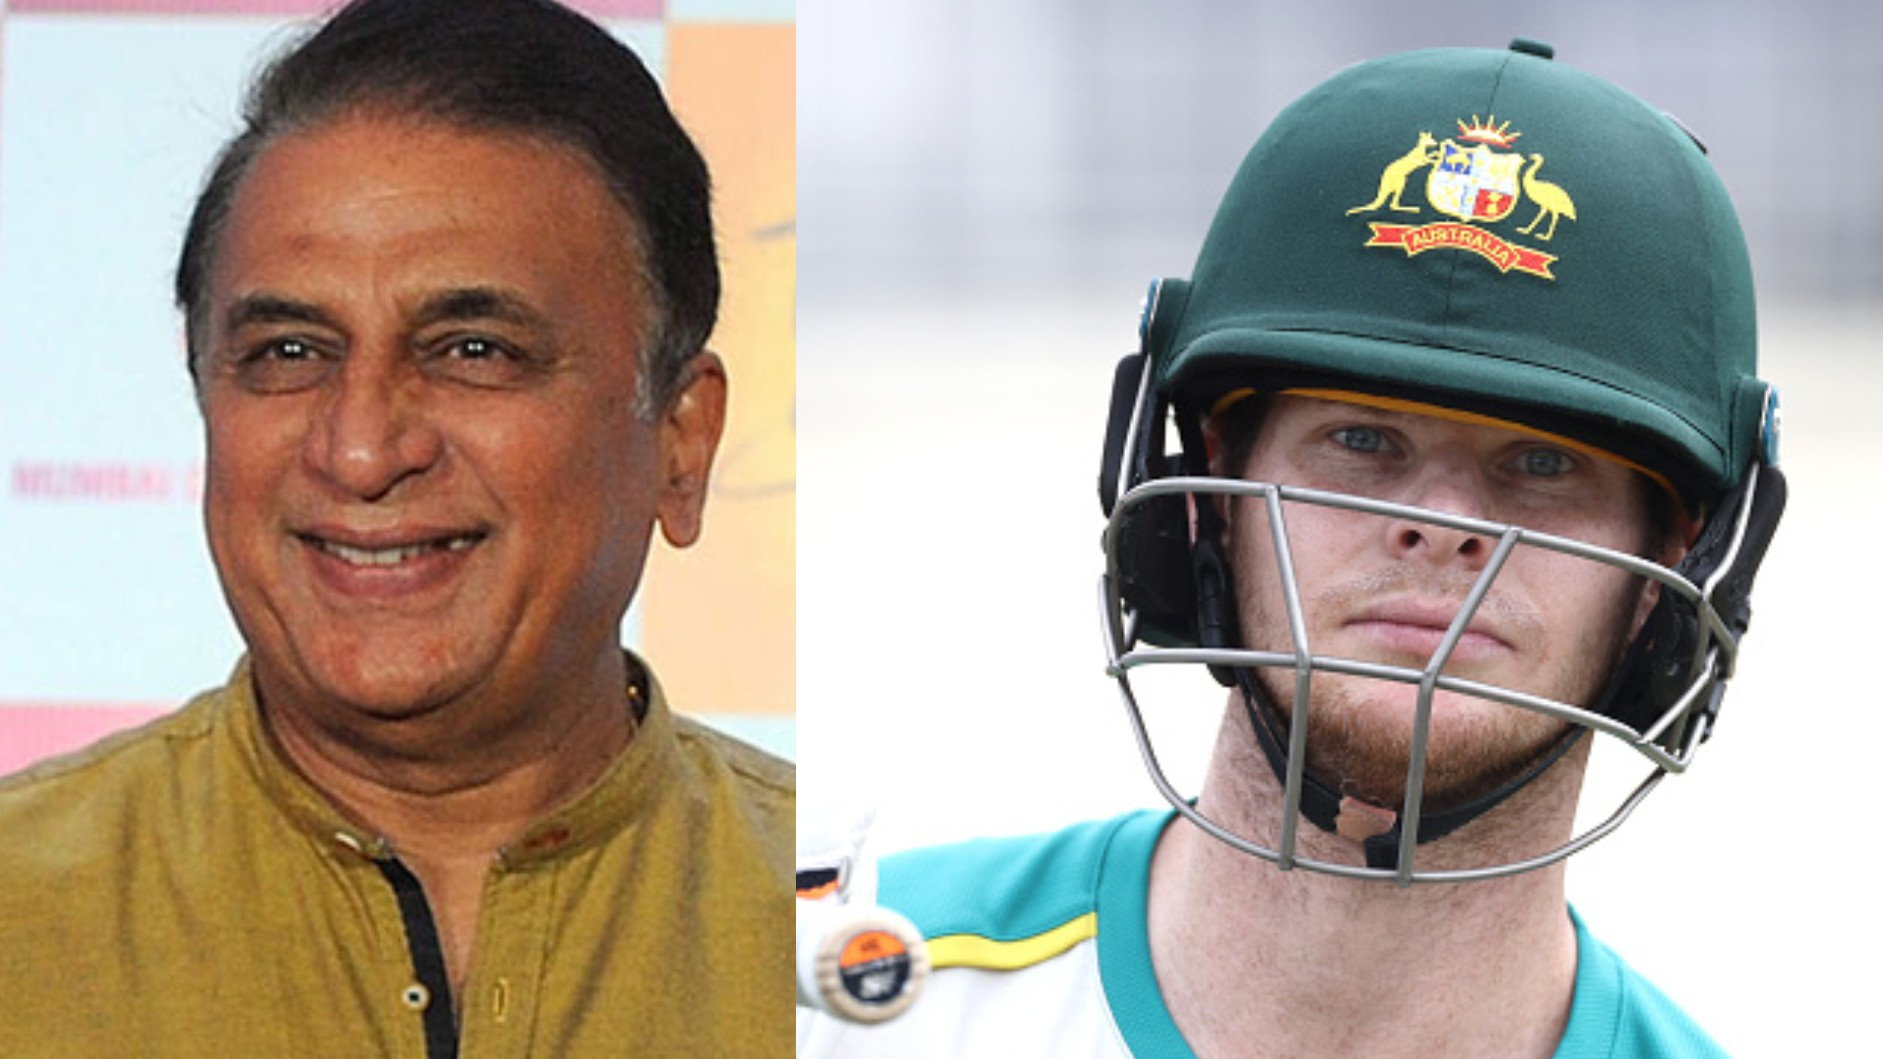 AUS v IND 2020-21: Sunil Gavaskar hails Steve Smith as one of the greatest batsman world has seen